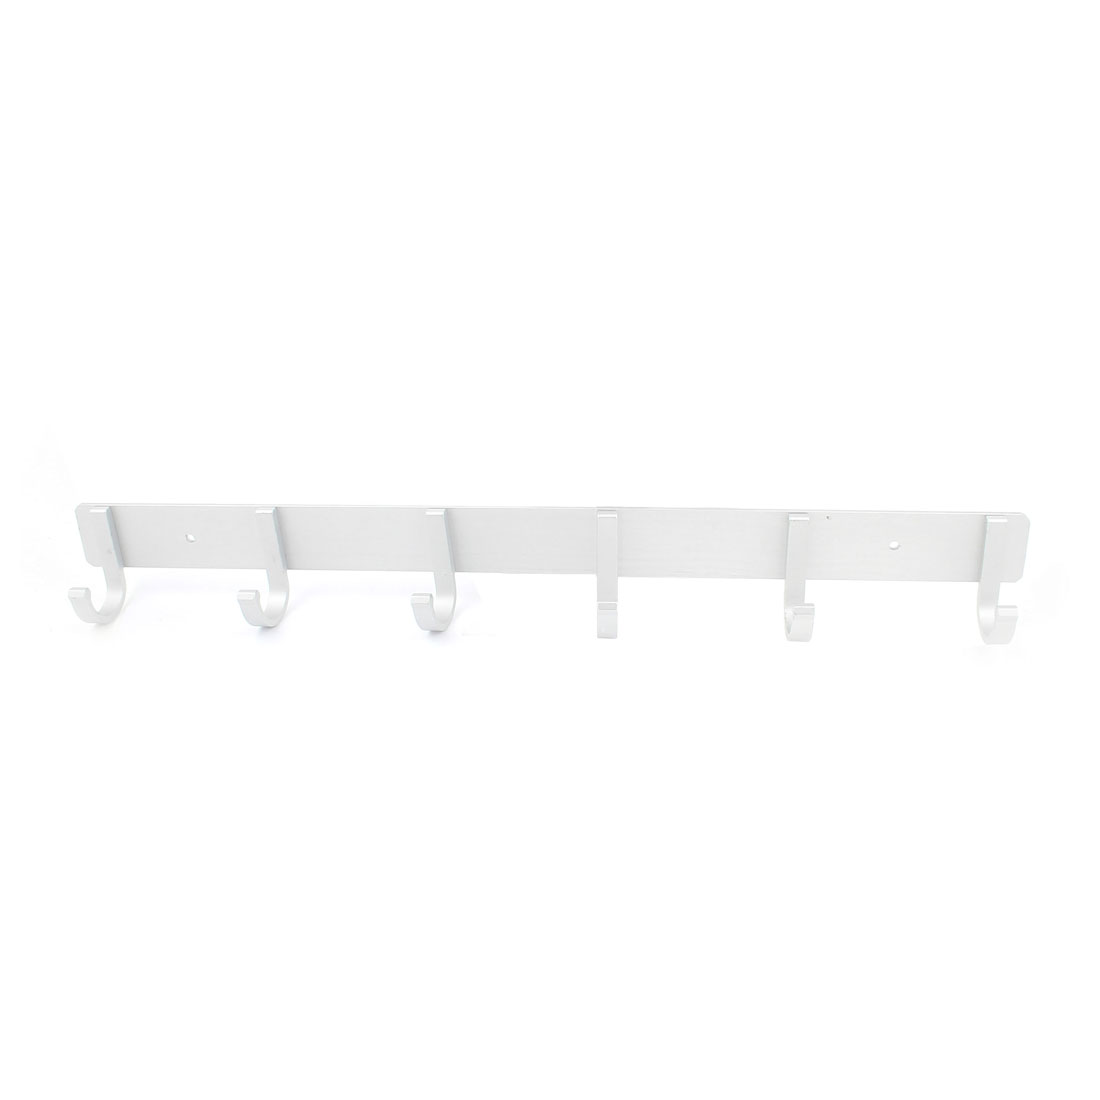 Aluminium 6 Fixed Hanger Towel Hat Coat Clothes Wall Mount Hook Rack Rail